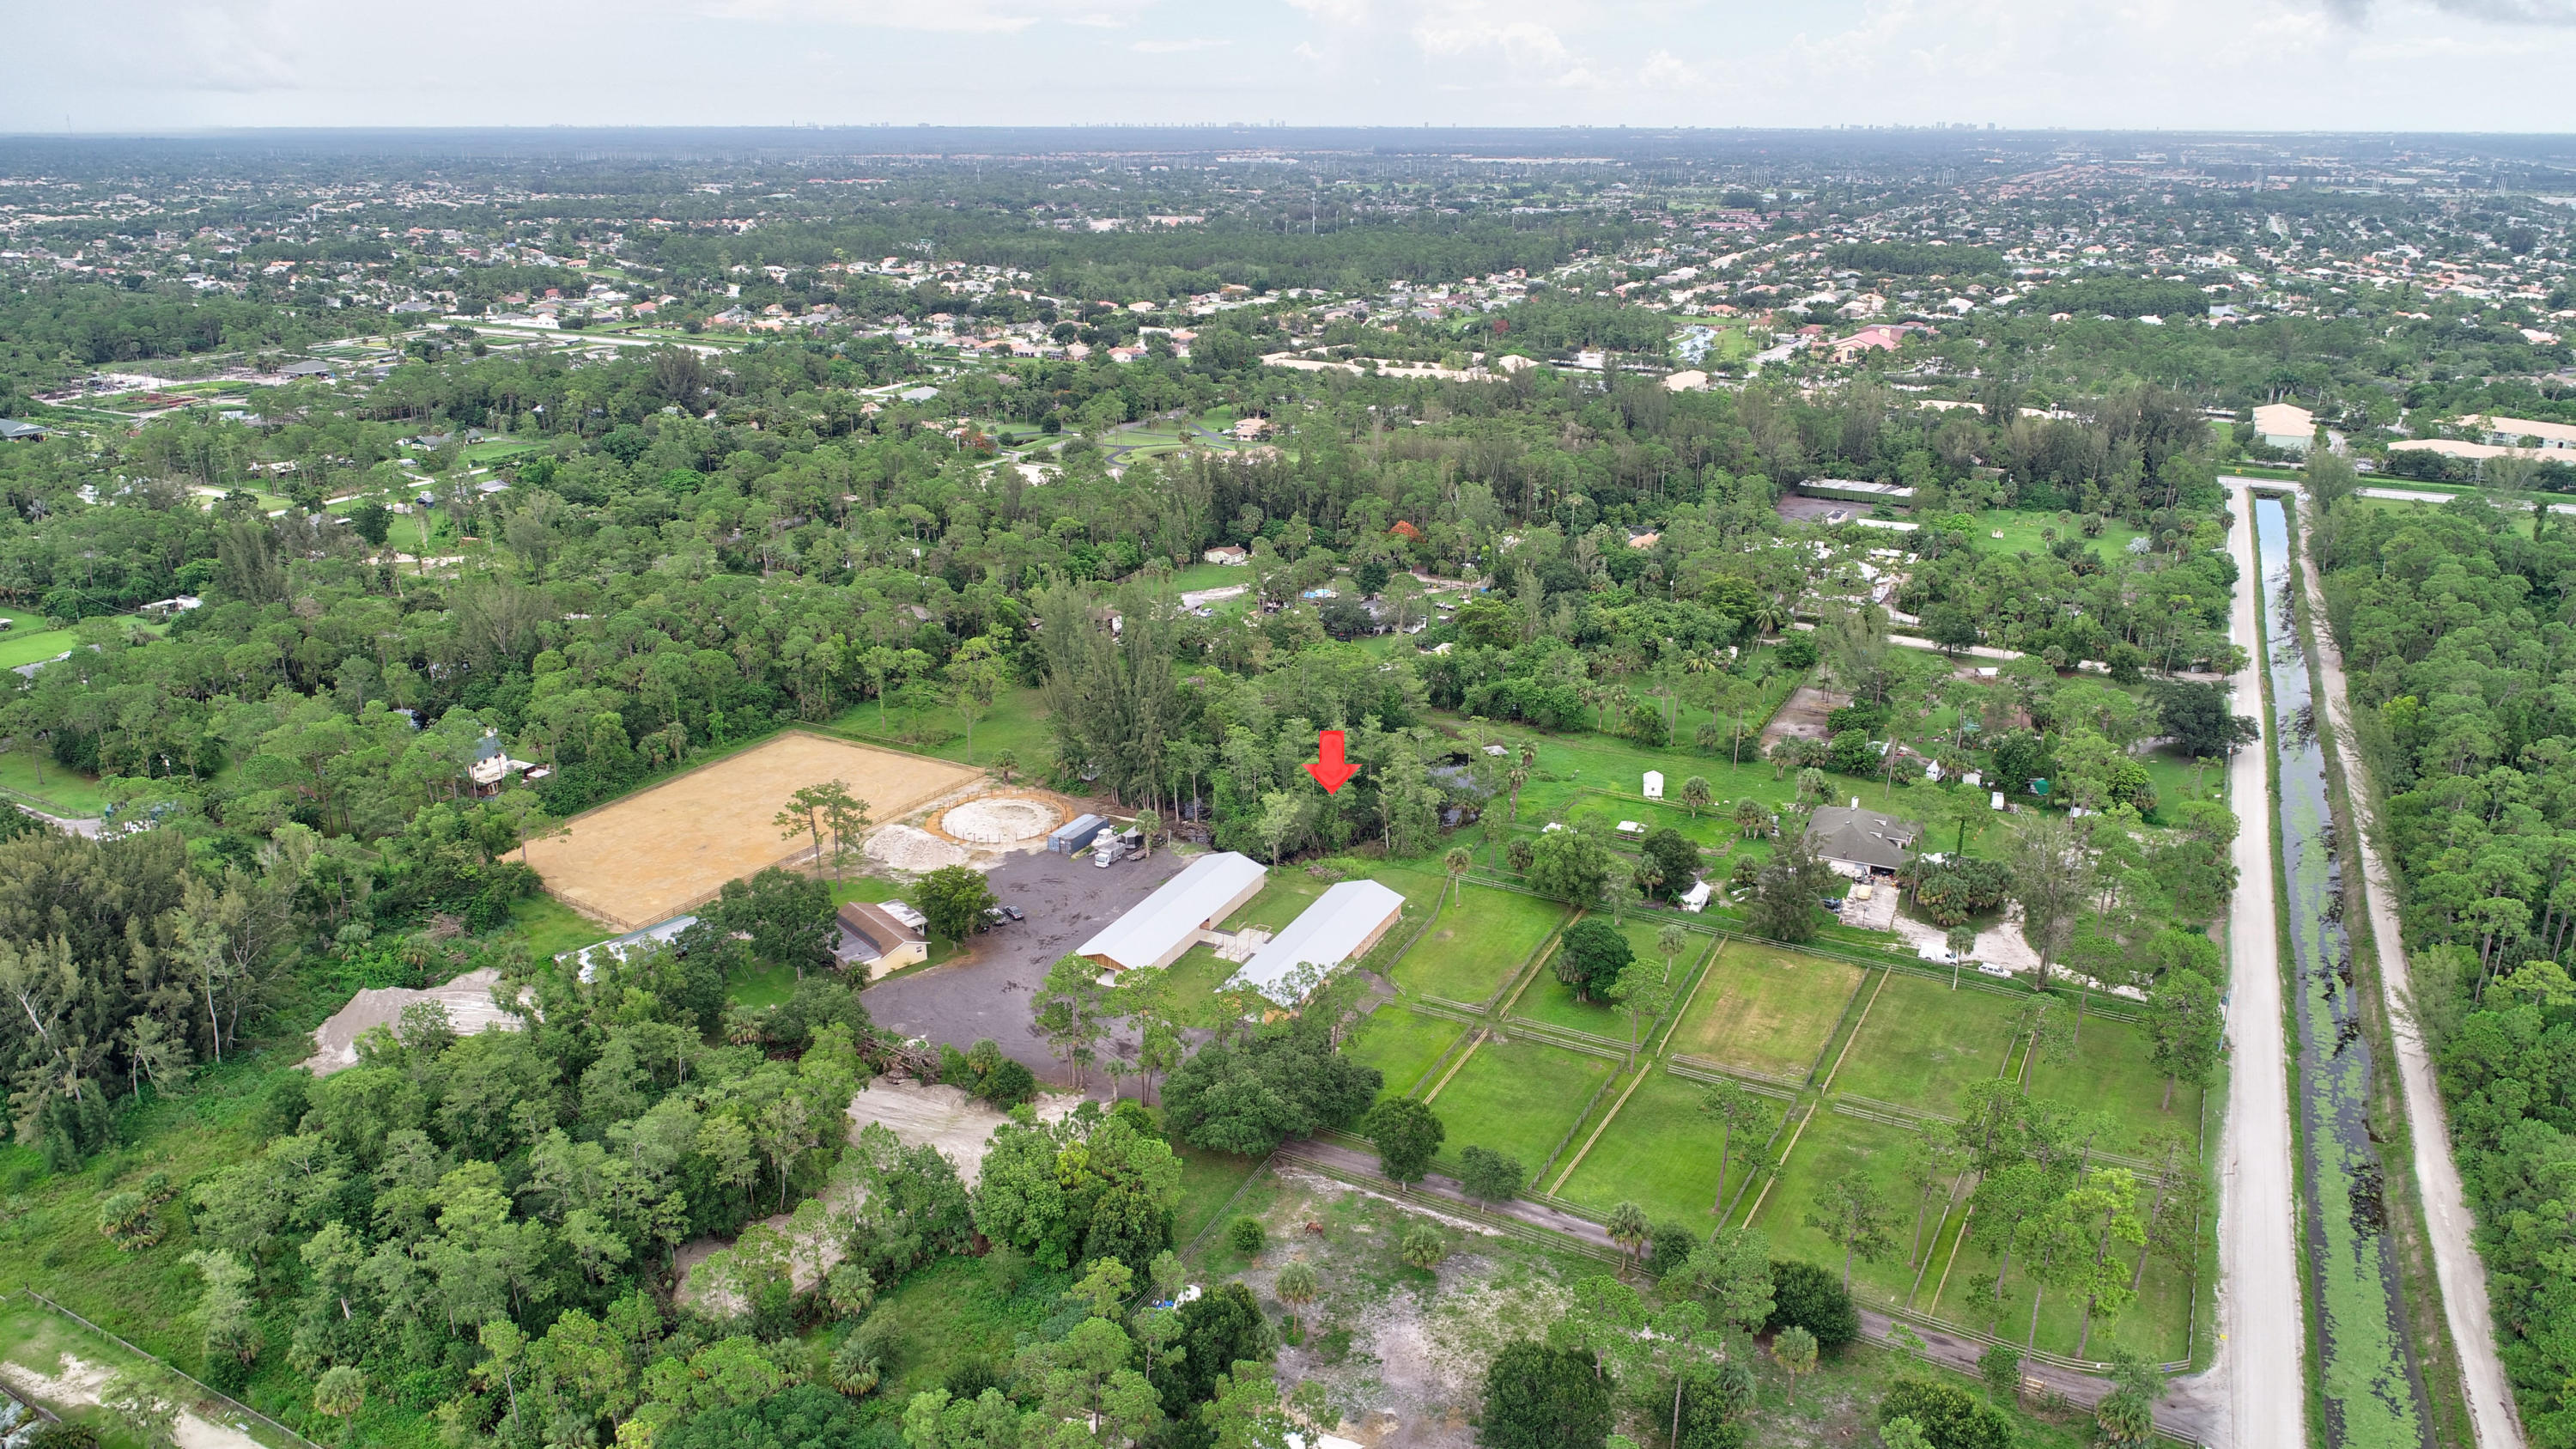 13101 Collecting Canal Road #B-10 Stall - 33470 - FL - Loxahatchee Groves